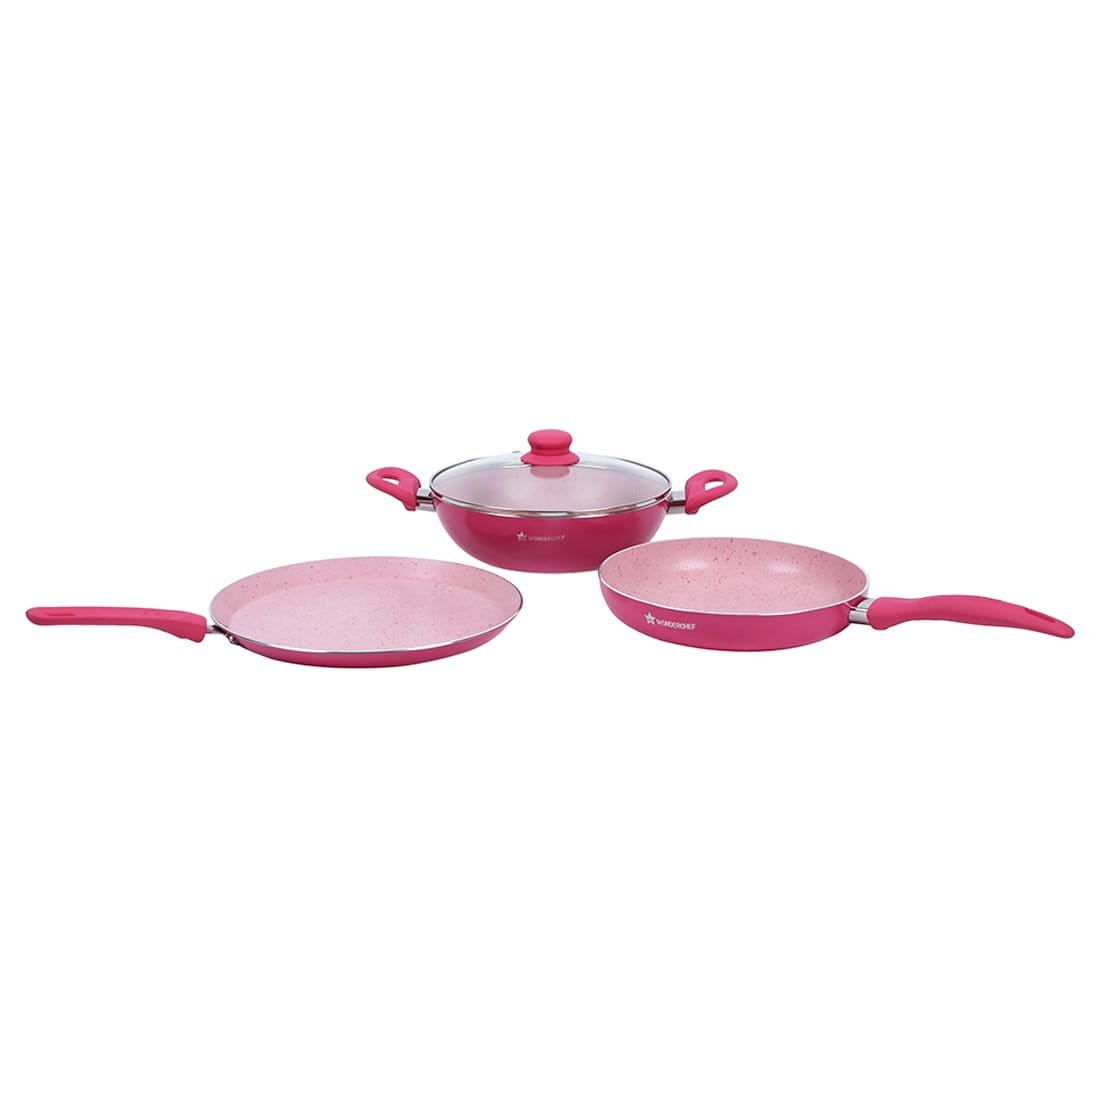 Wonderchef French Blossom Pink Set